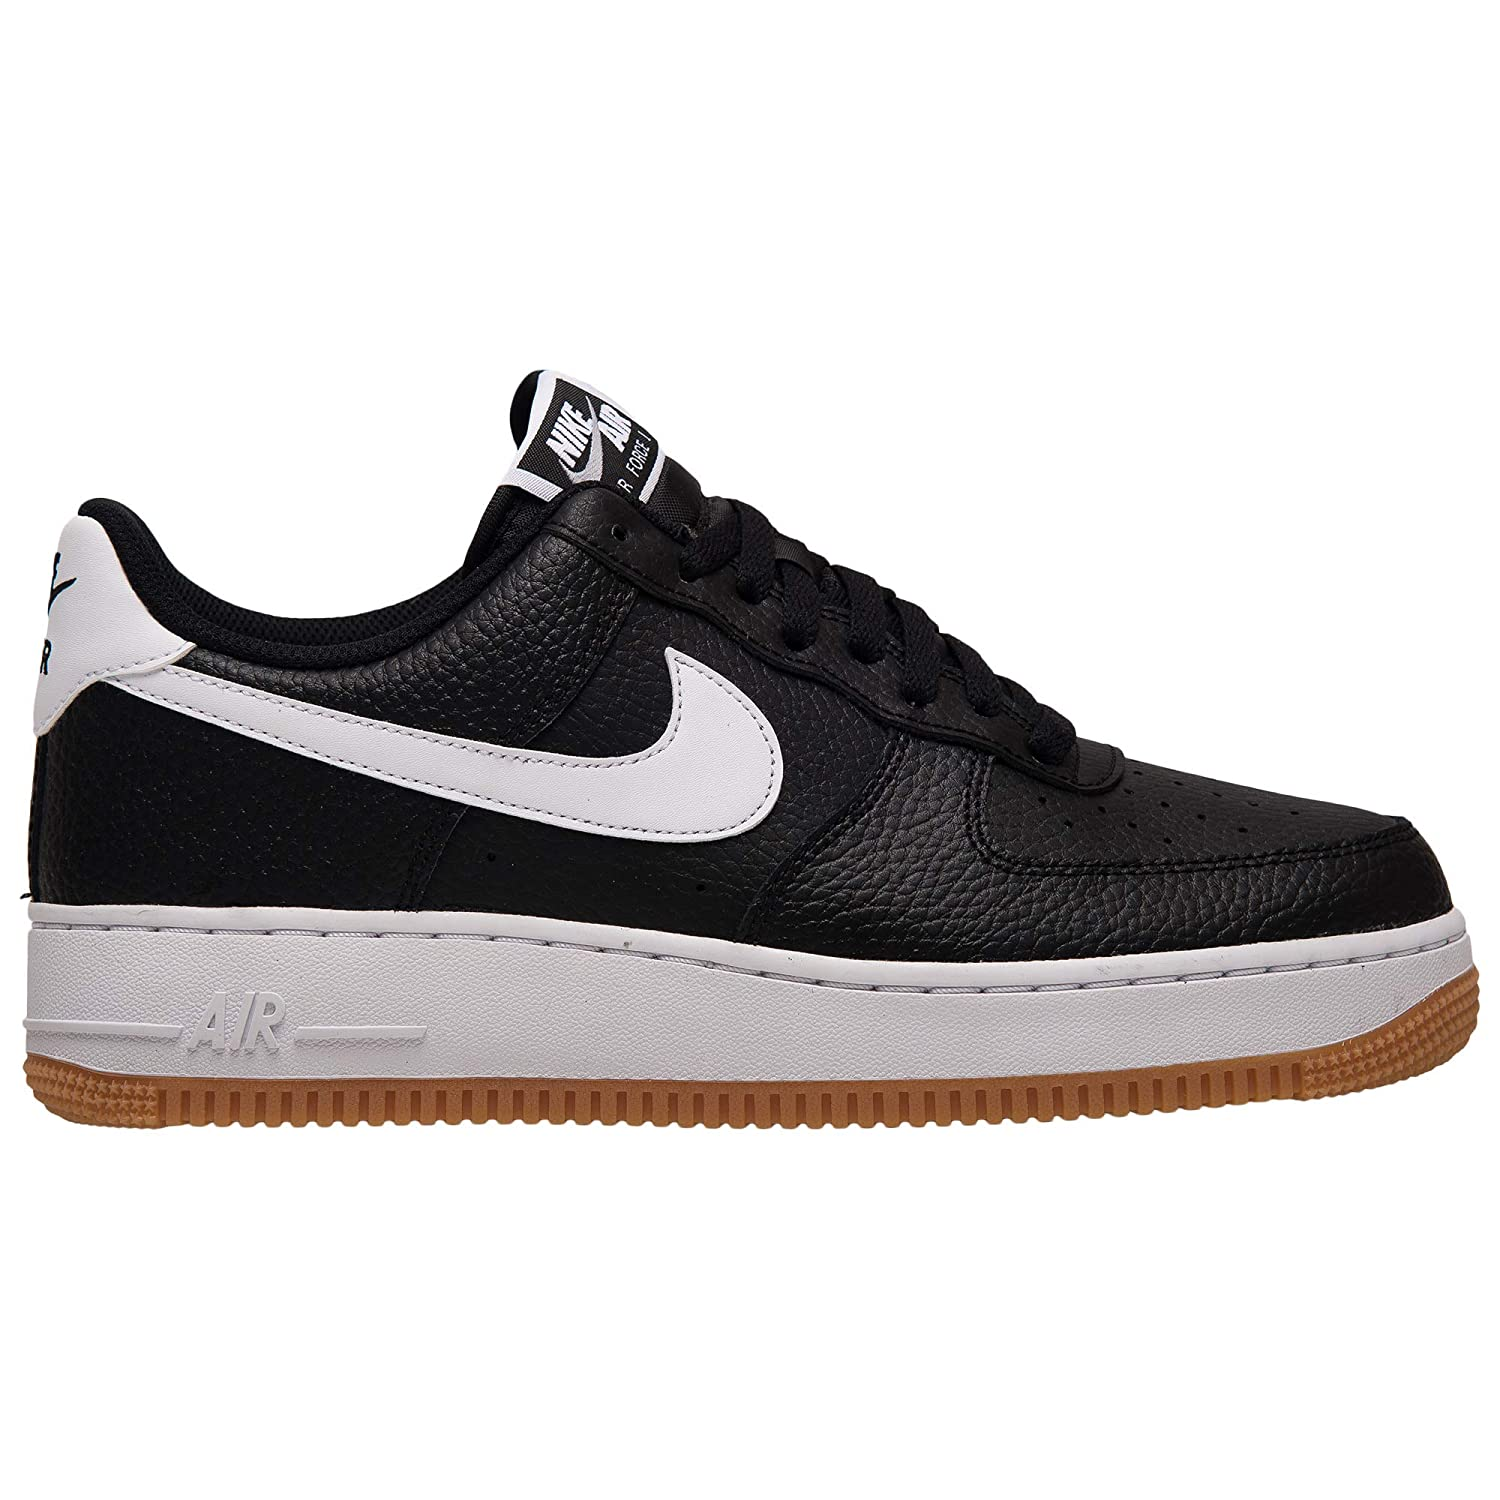 Nike Air Force 1 Low GS 'Wolf Grey' – The Sneaker Of The Day